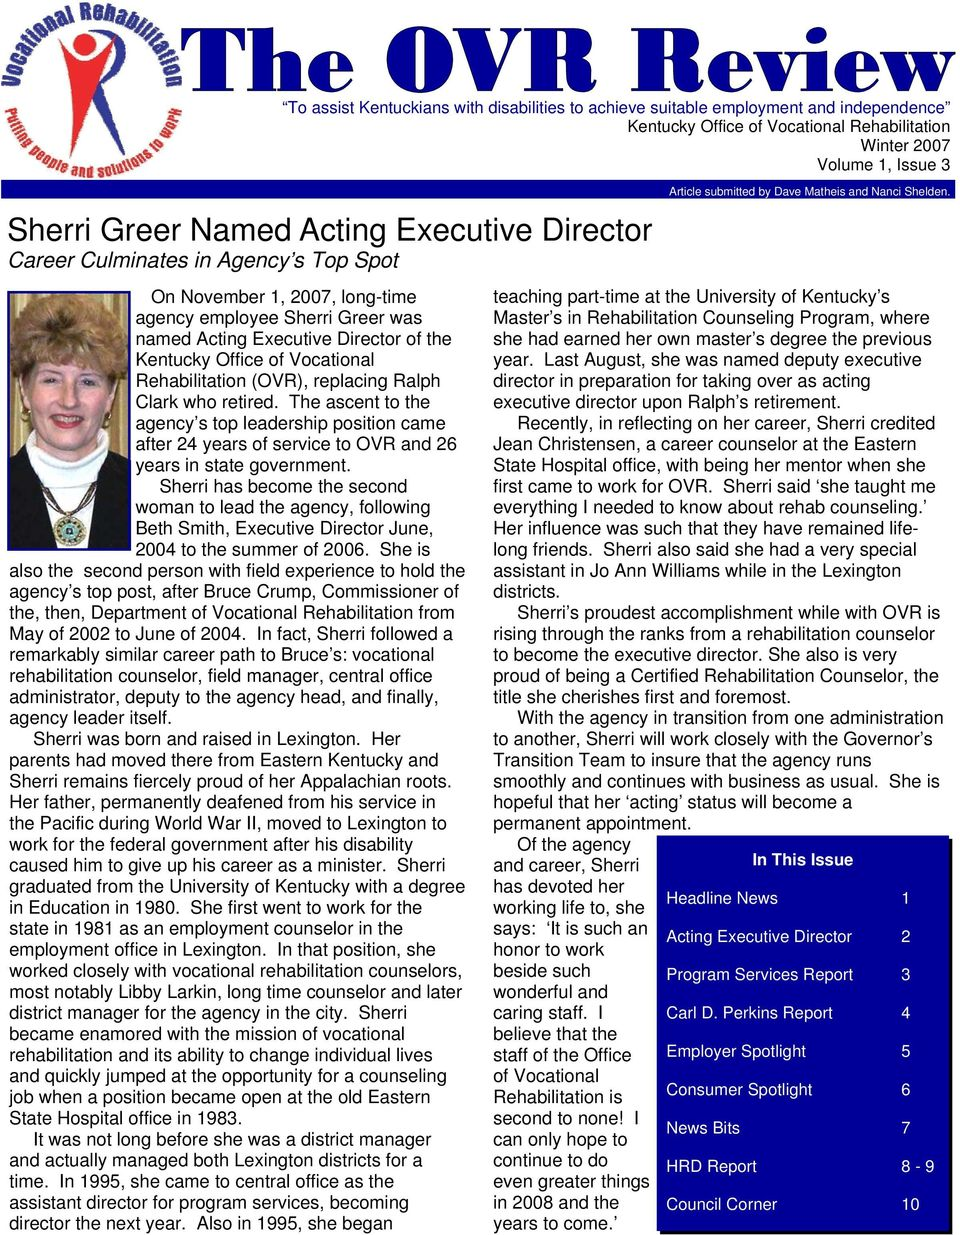 The ascent to the agency s top leadership position came after 24 years of service to OVR and 26 years in state government.